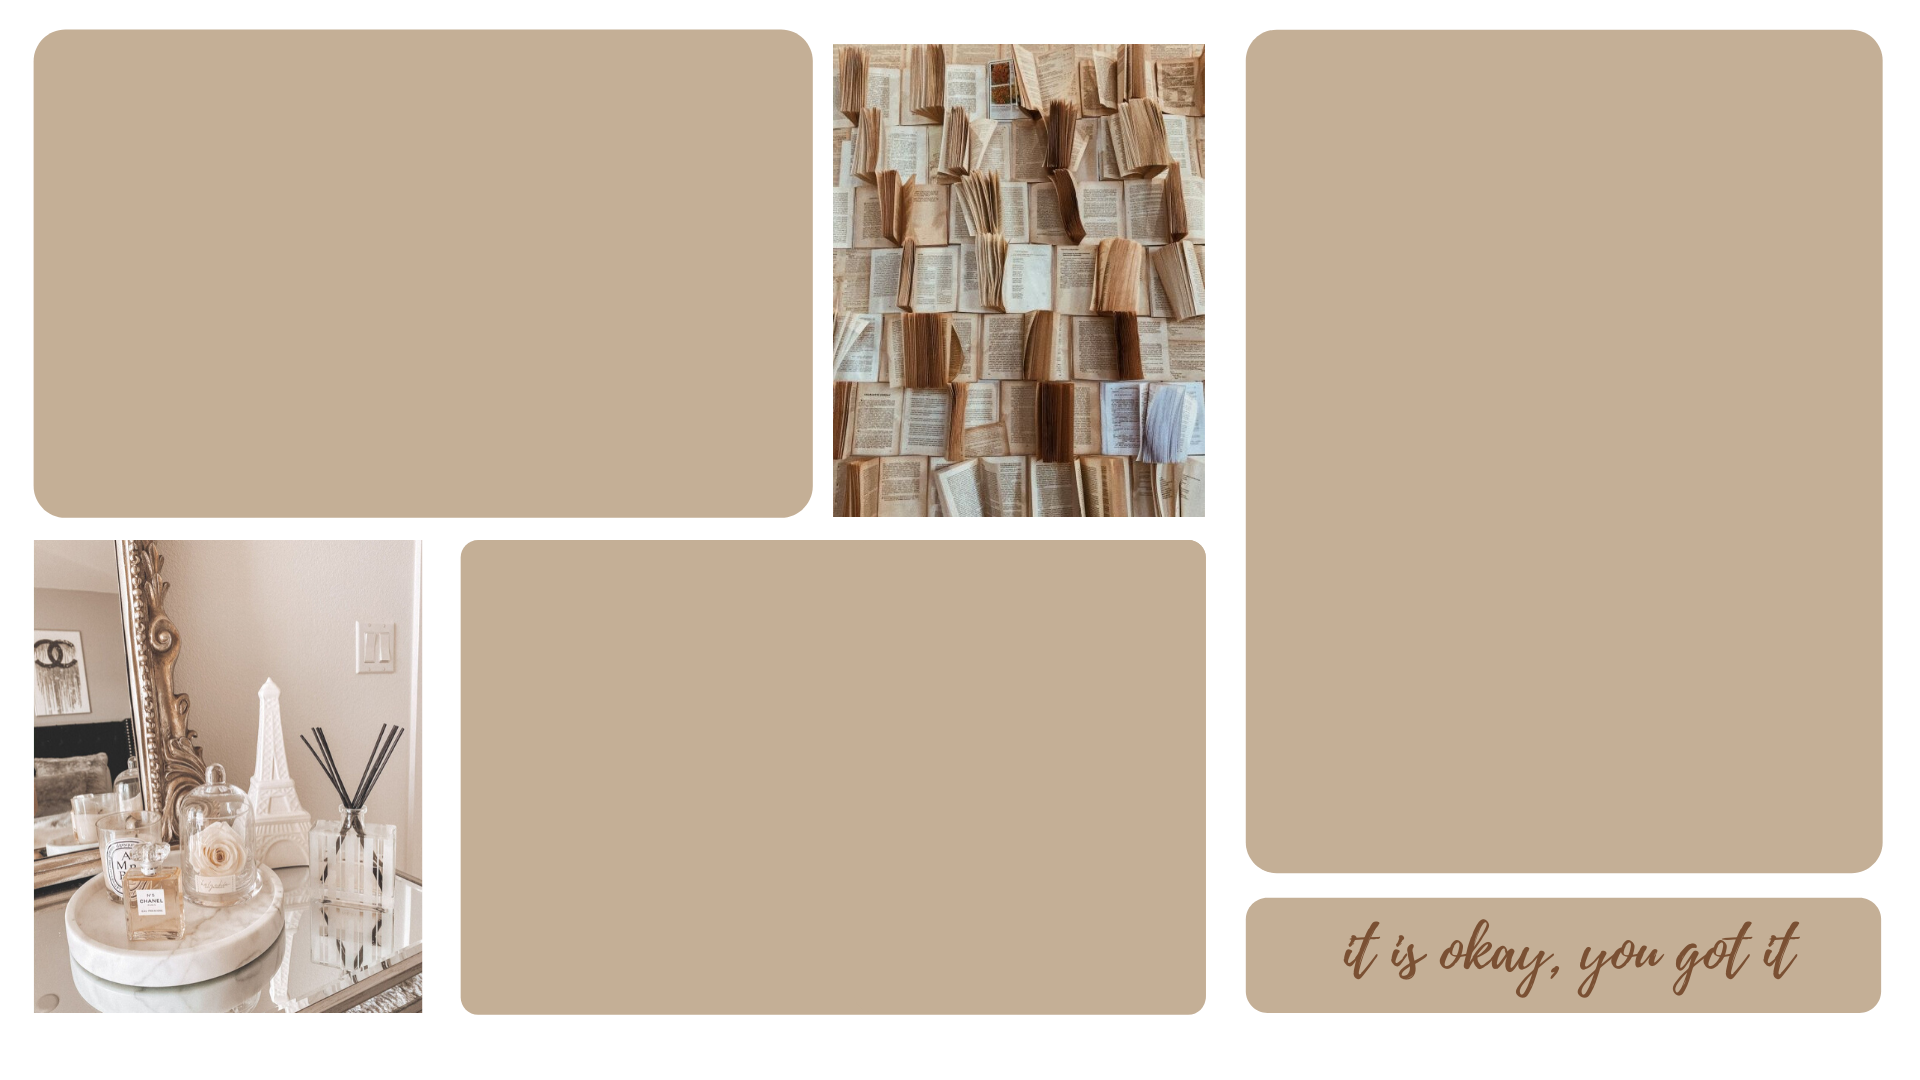 Spice up your room! Aesthetic Beige Boujee Wall Collage